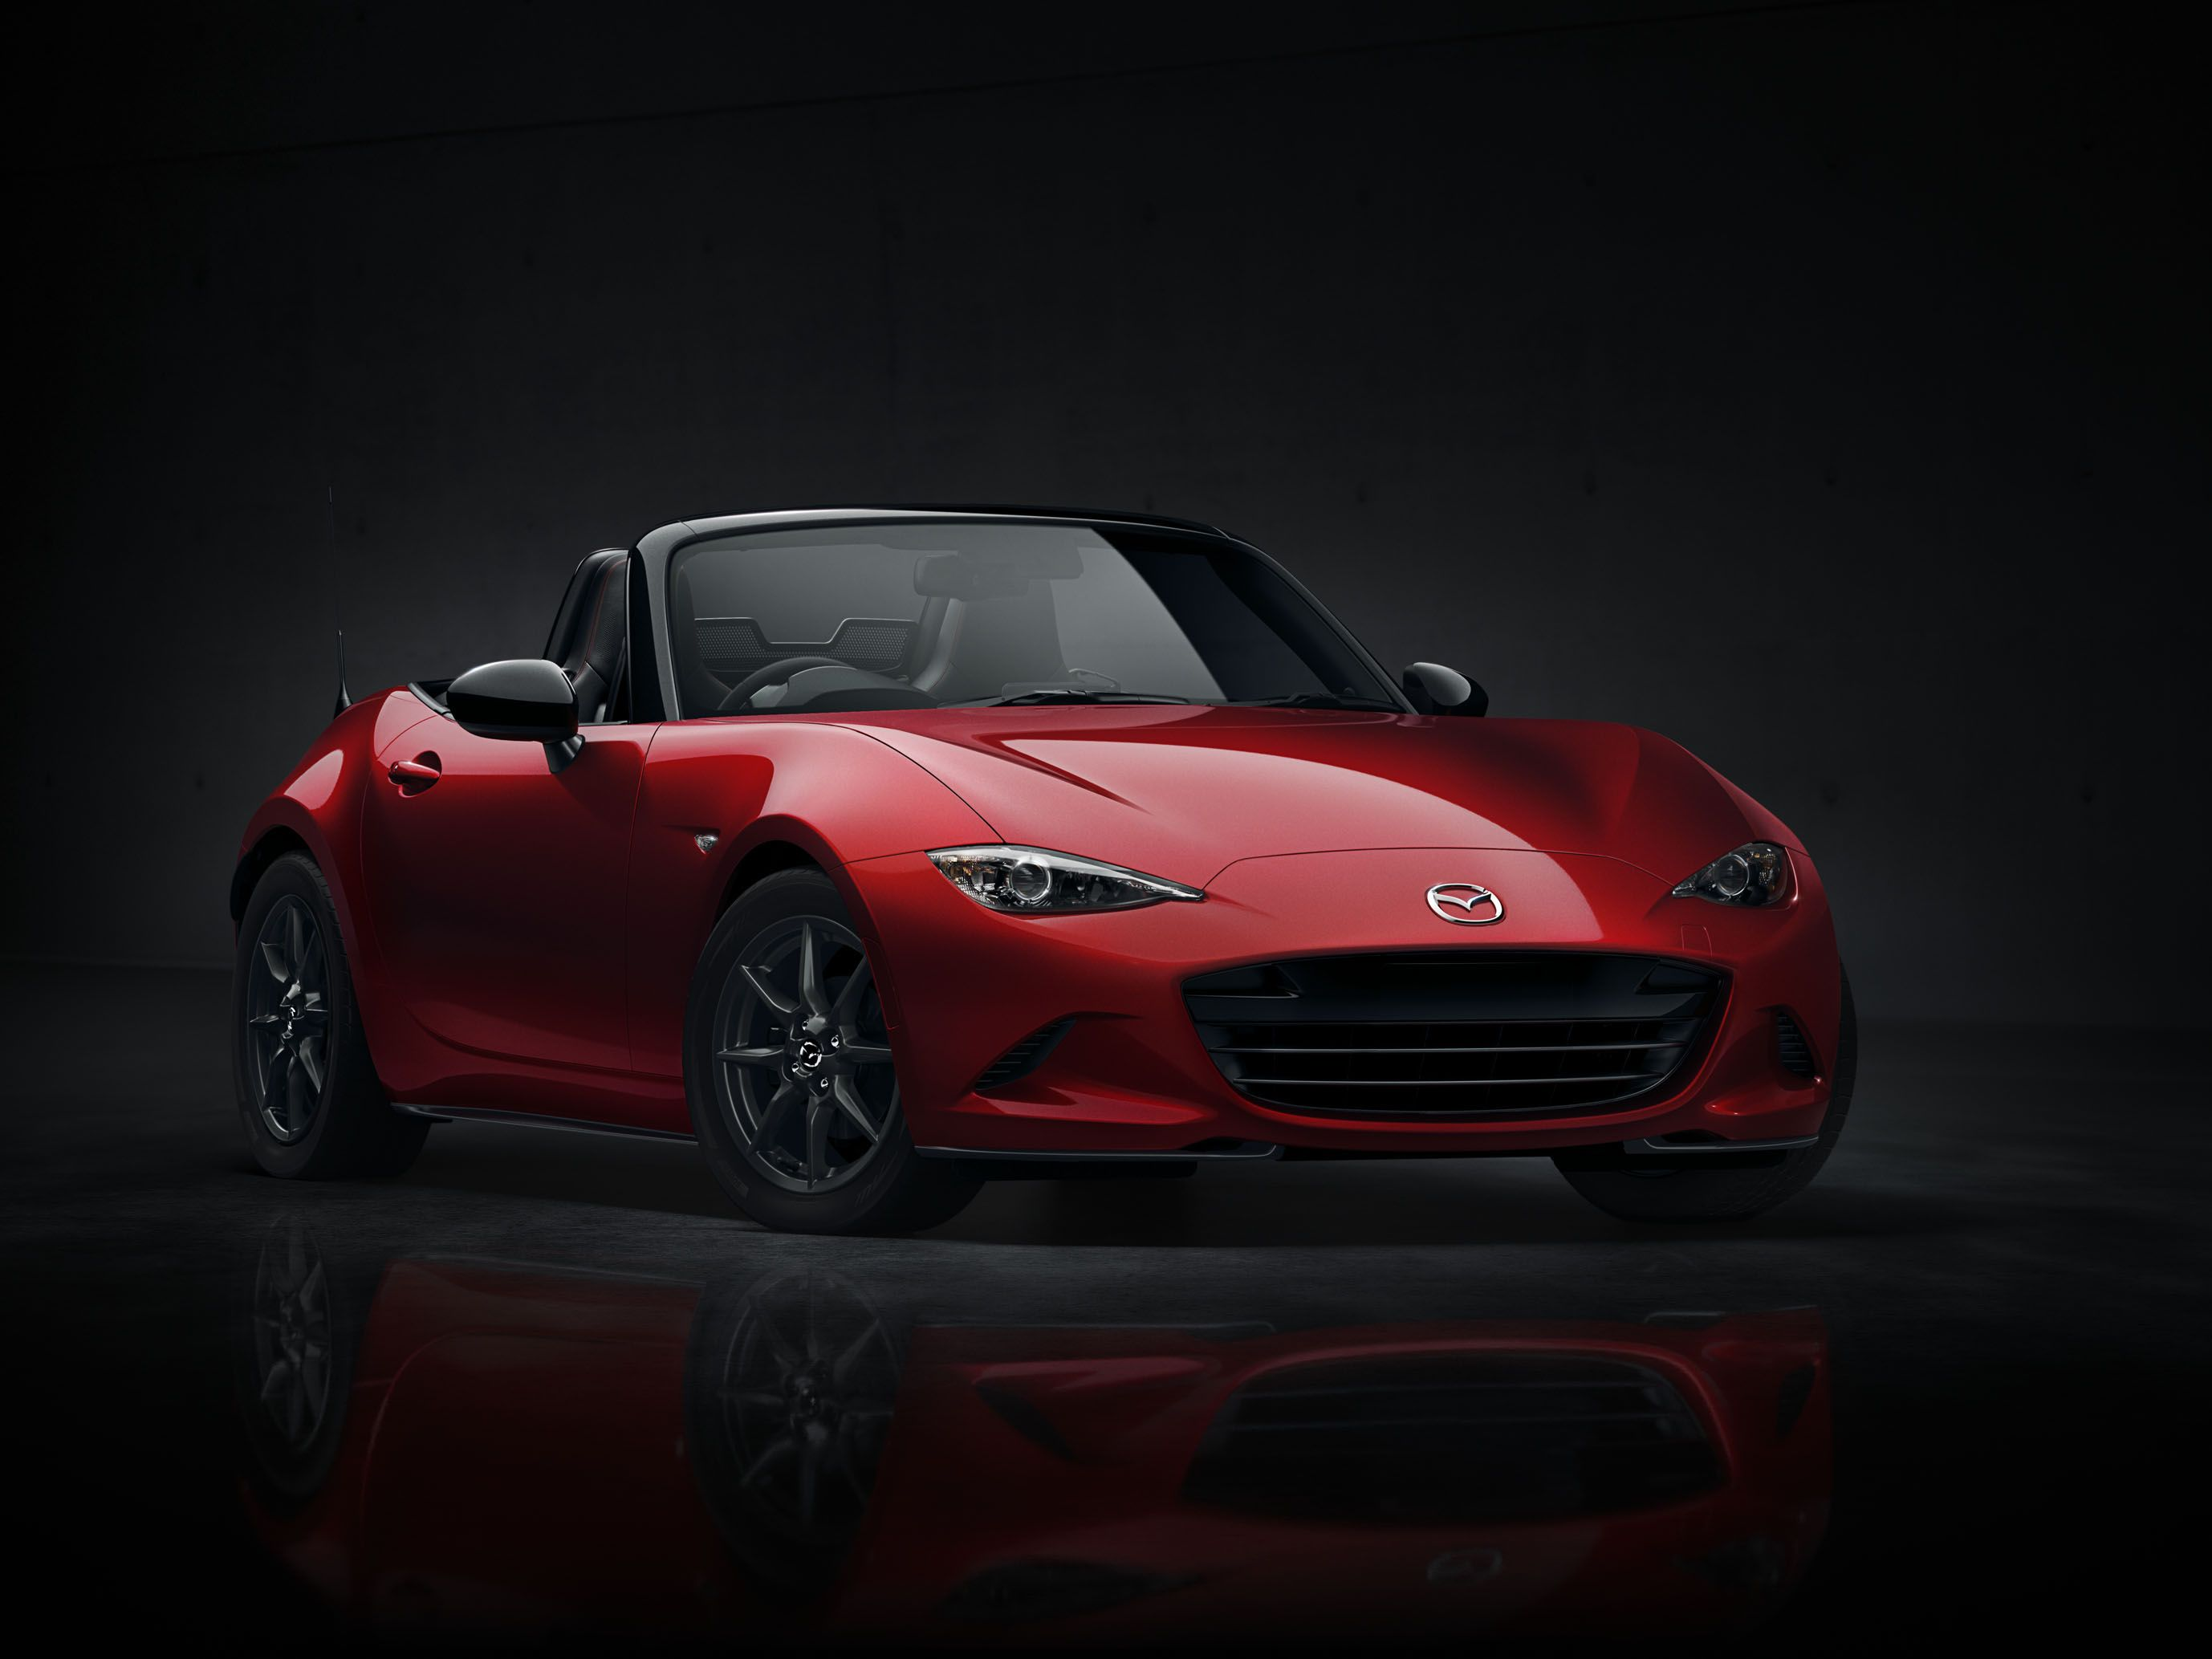 Read all about the 2016 mazda miata roadster and see plenty of 2016 miata photos in this first look article from motor trend